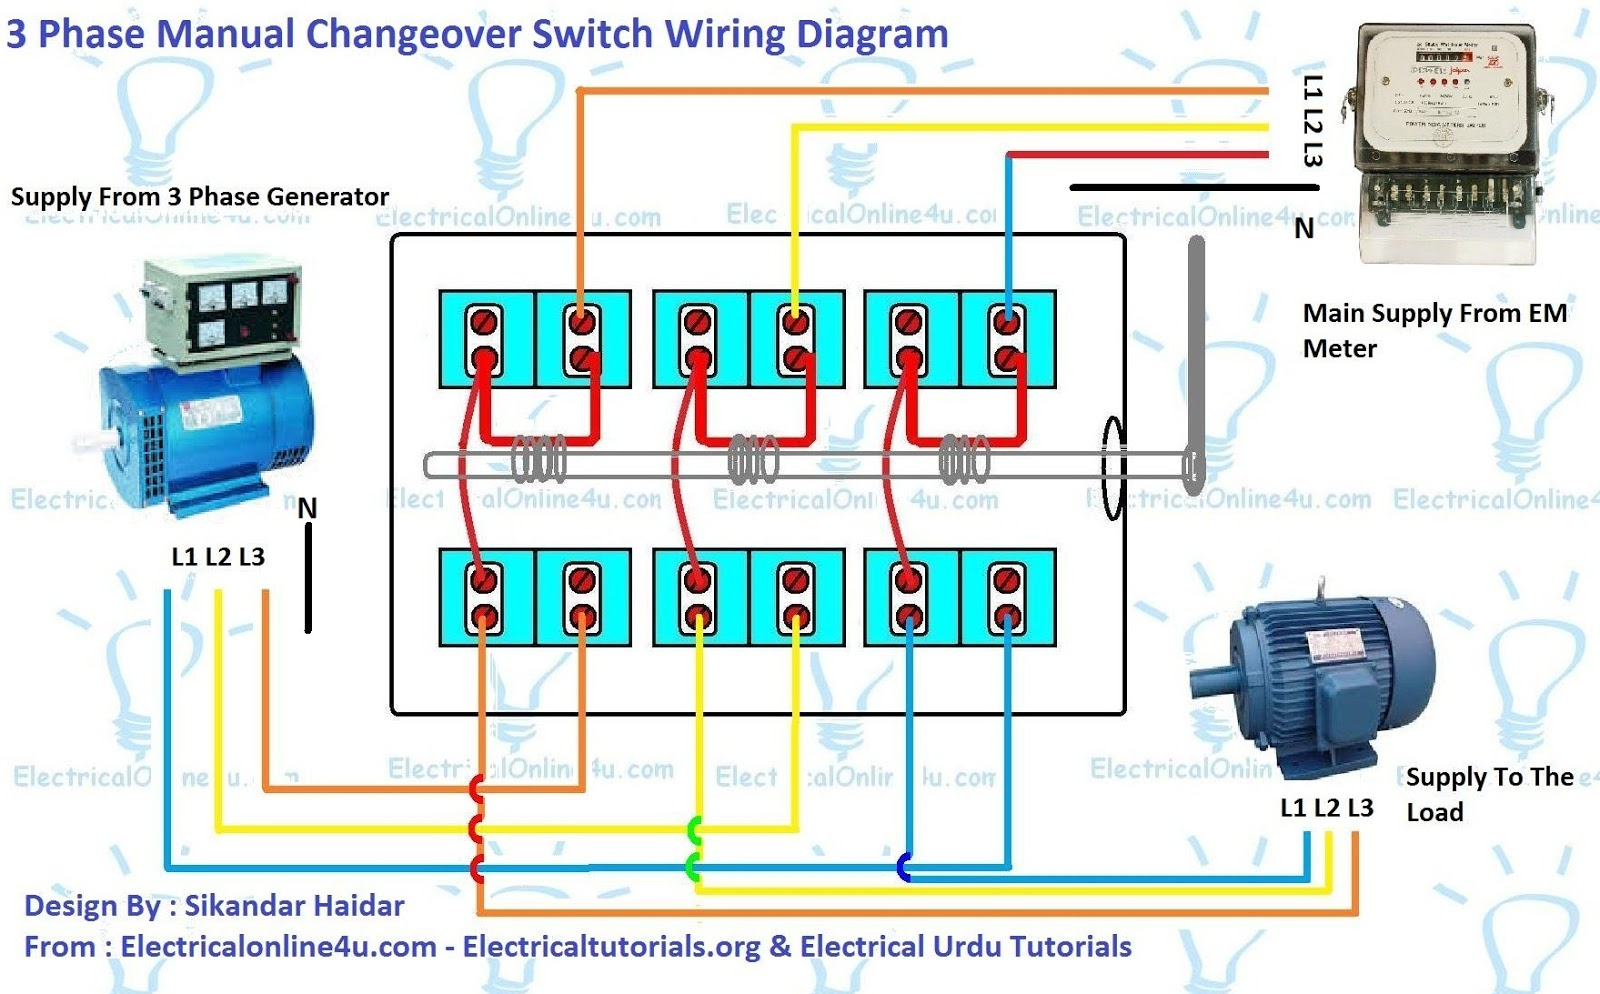 3 phase manual changeover switch wiring diagram for generator, Wiring diagram